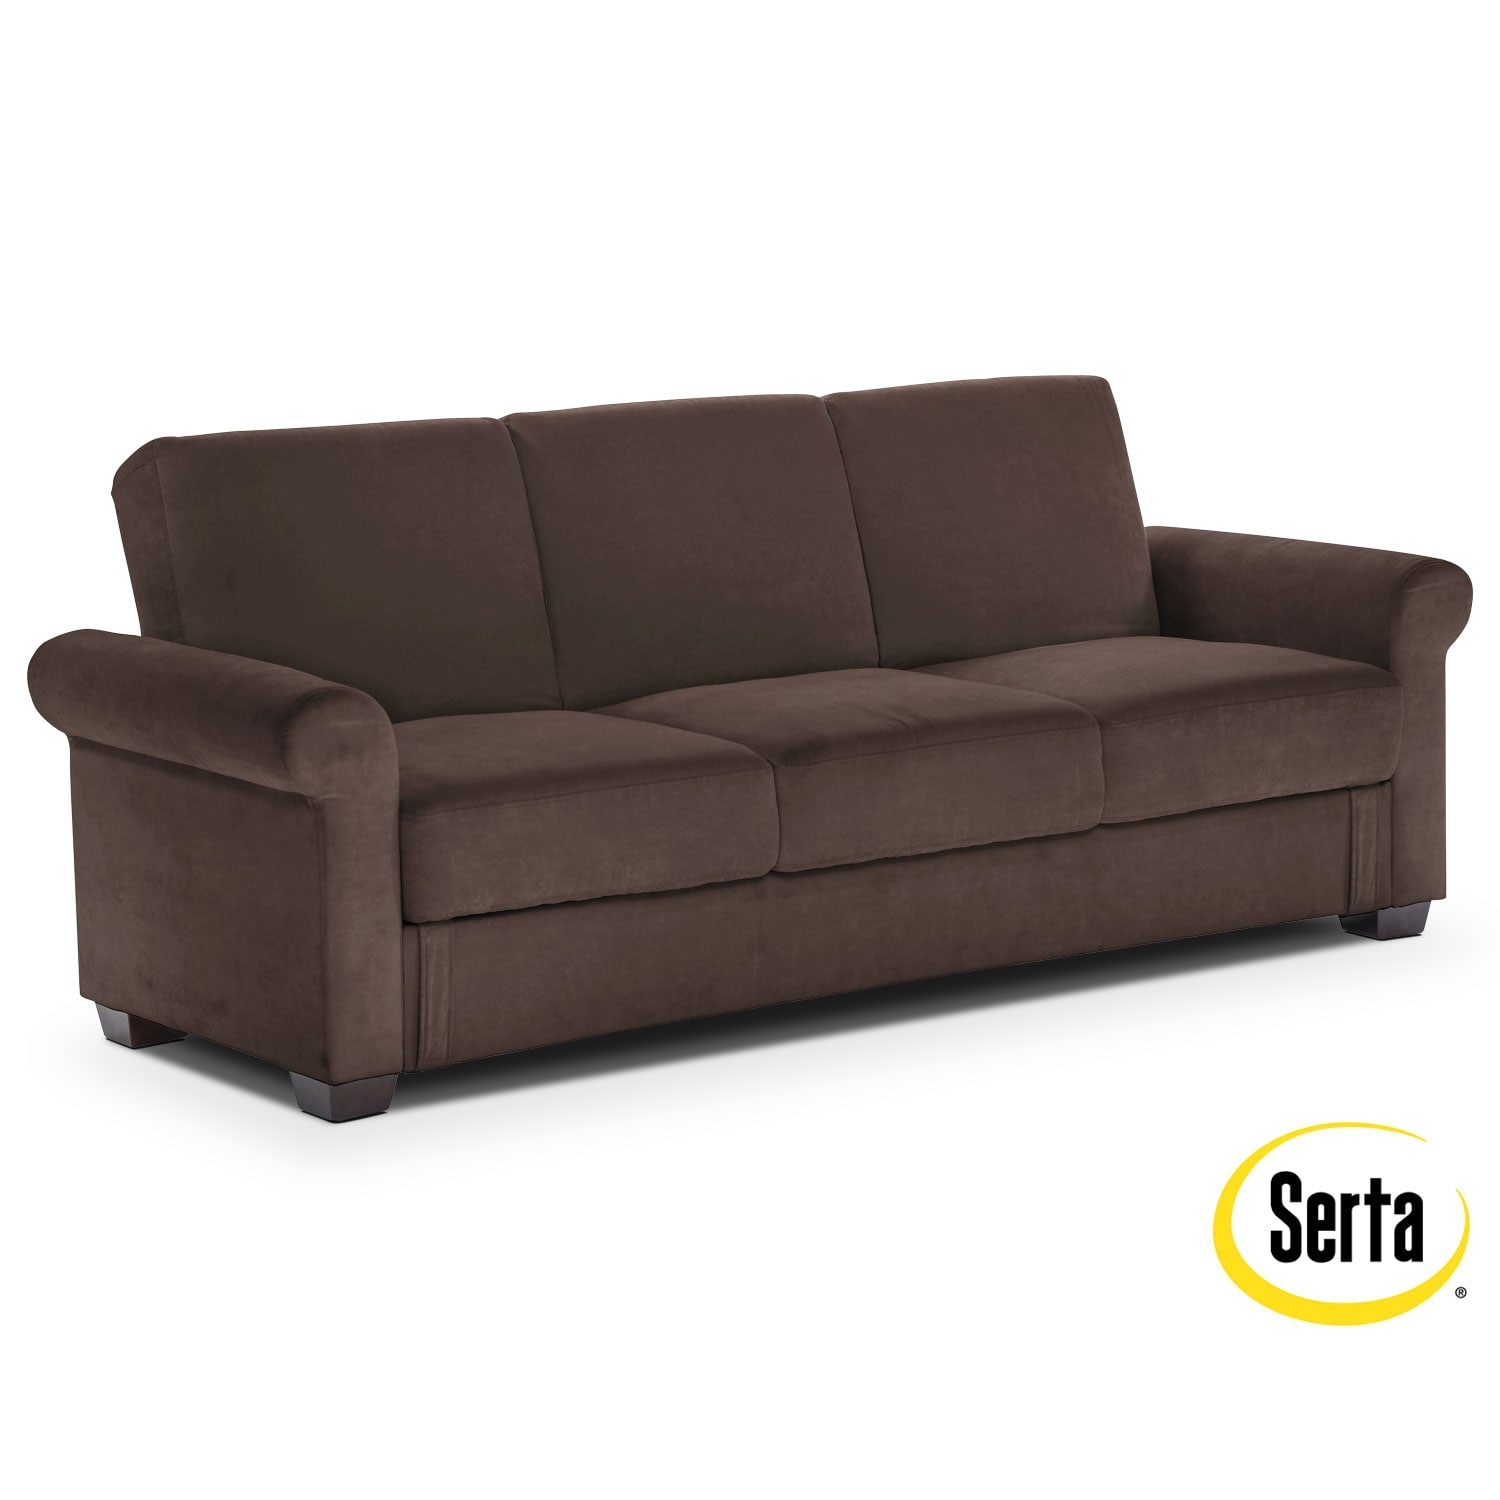 Thomas Futon Sofa Bed with Storage